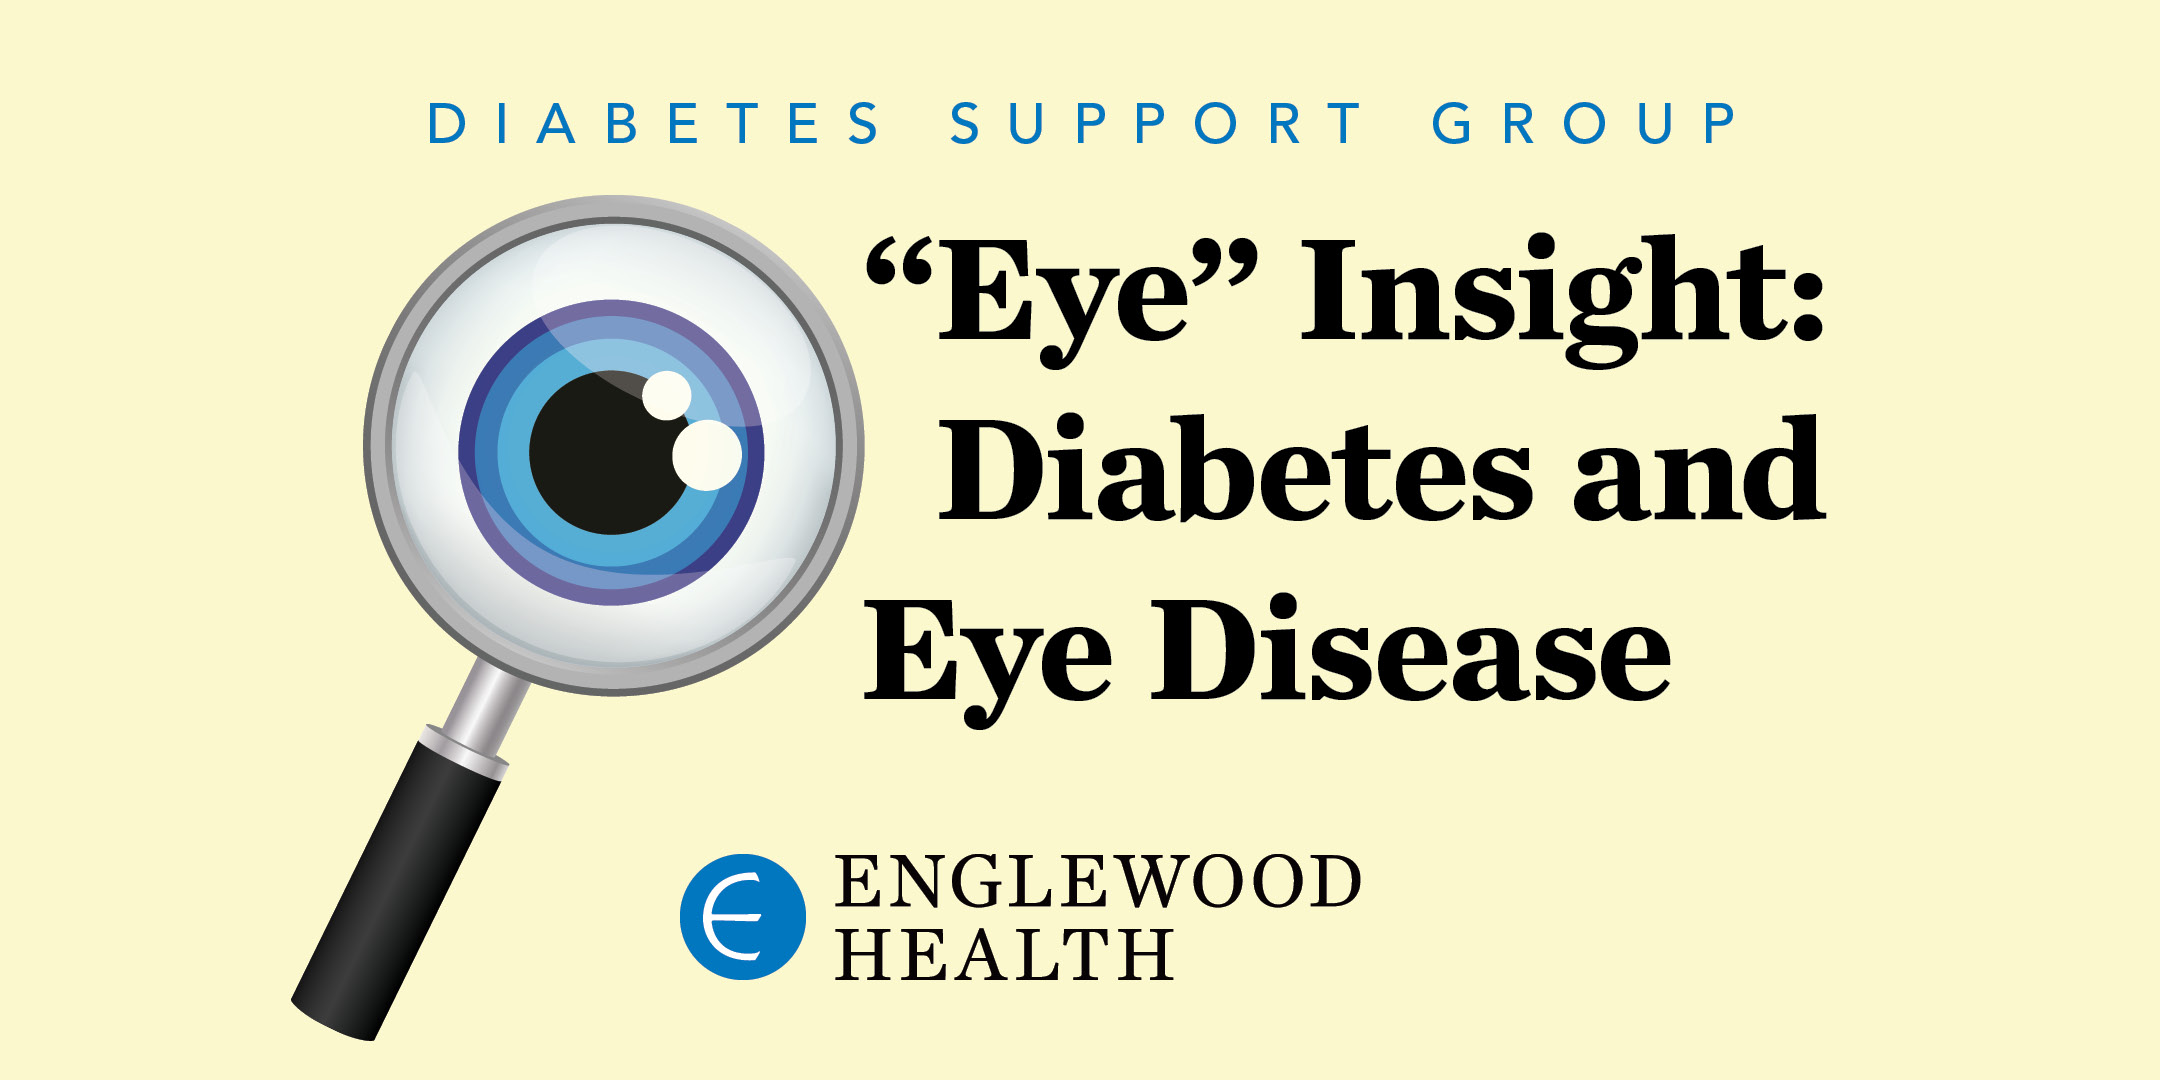 More info: Diabetes Education Support Group